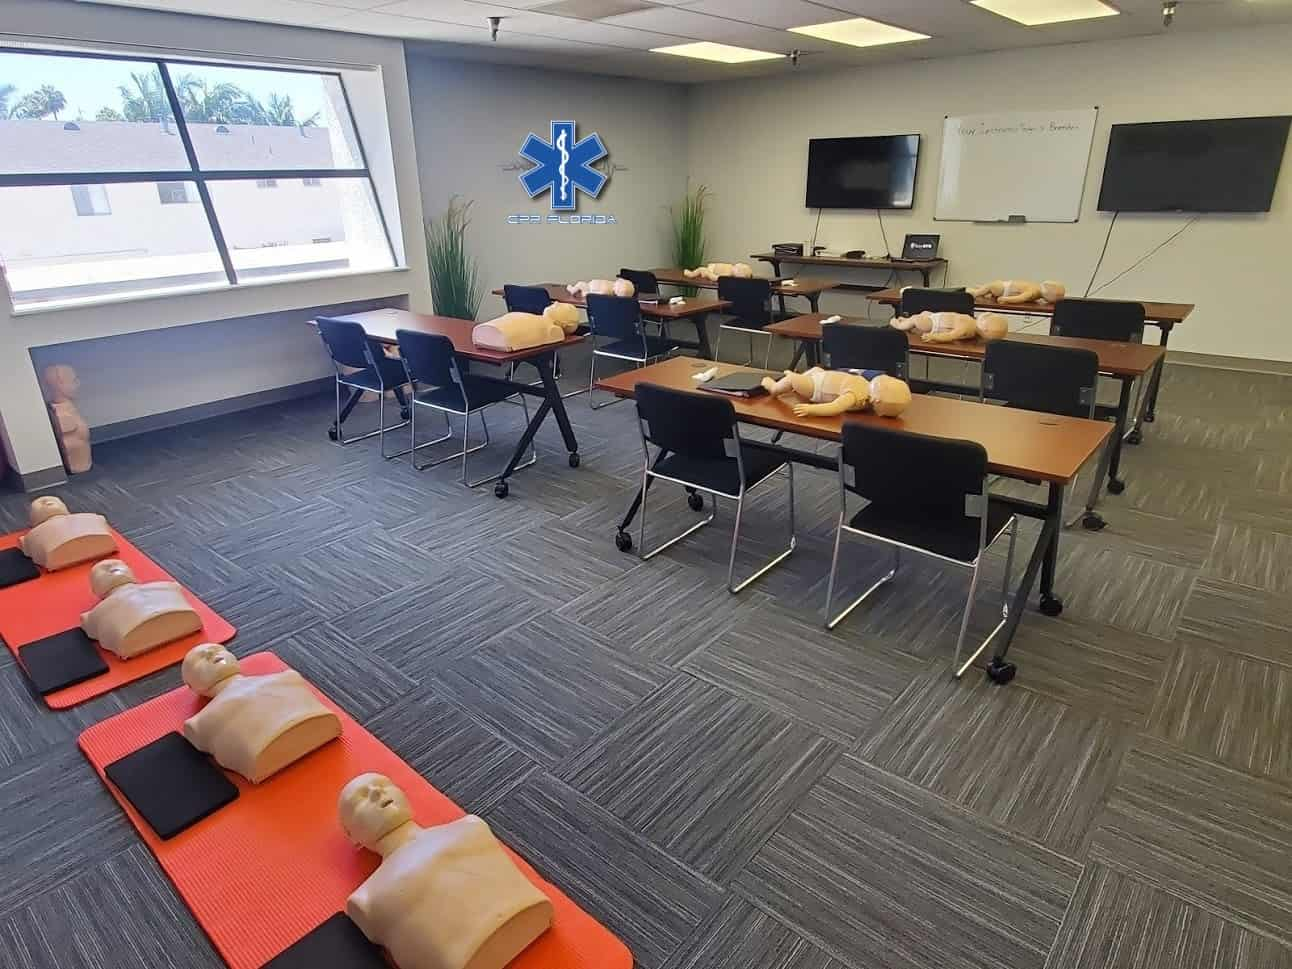 Top rated Fort Lauderdale cpr bls certification classes